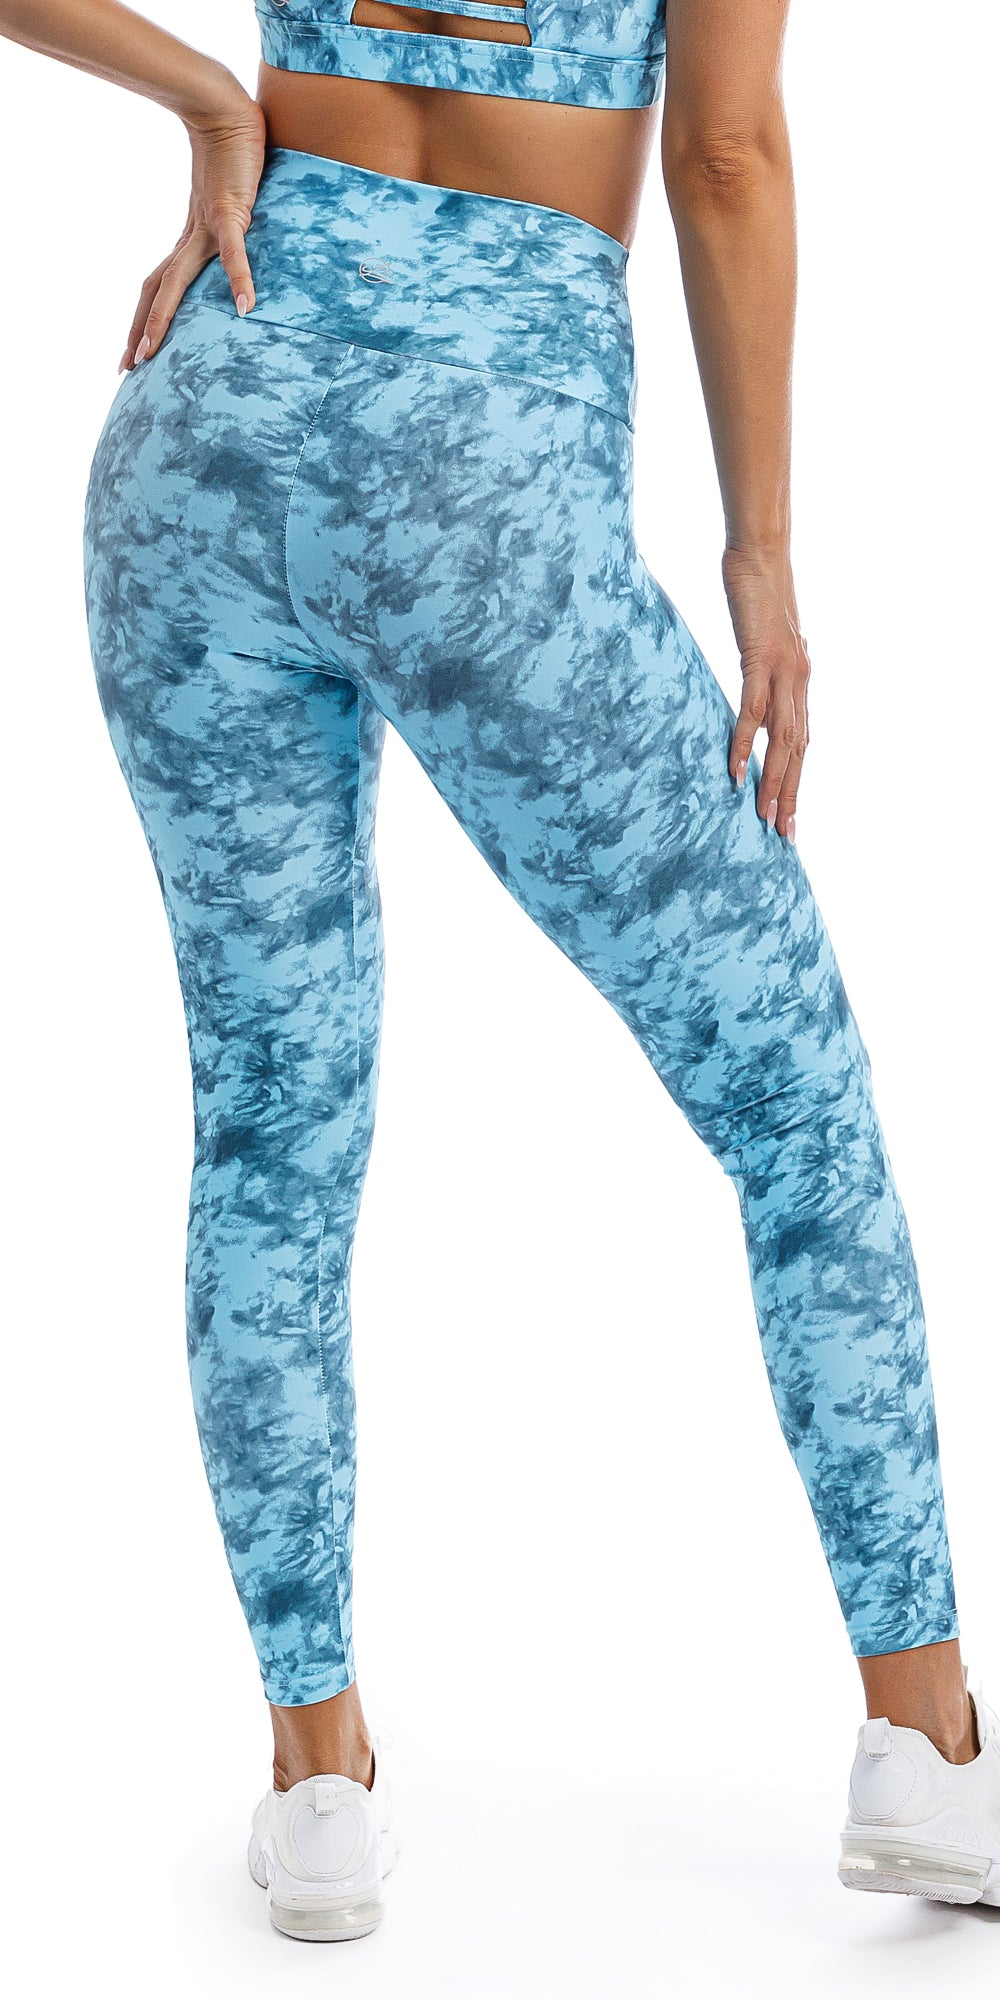 Rear view of girl wearing blue tie dye blue crush print ultra high waist leggings & matching momentum bra